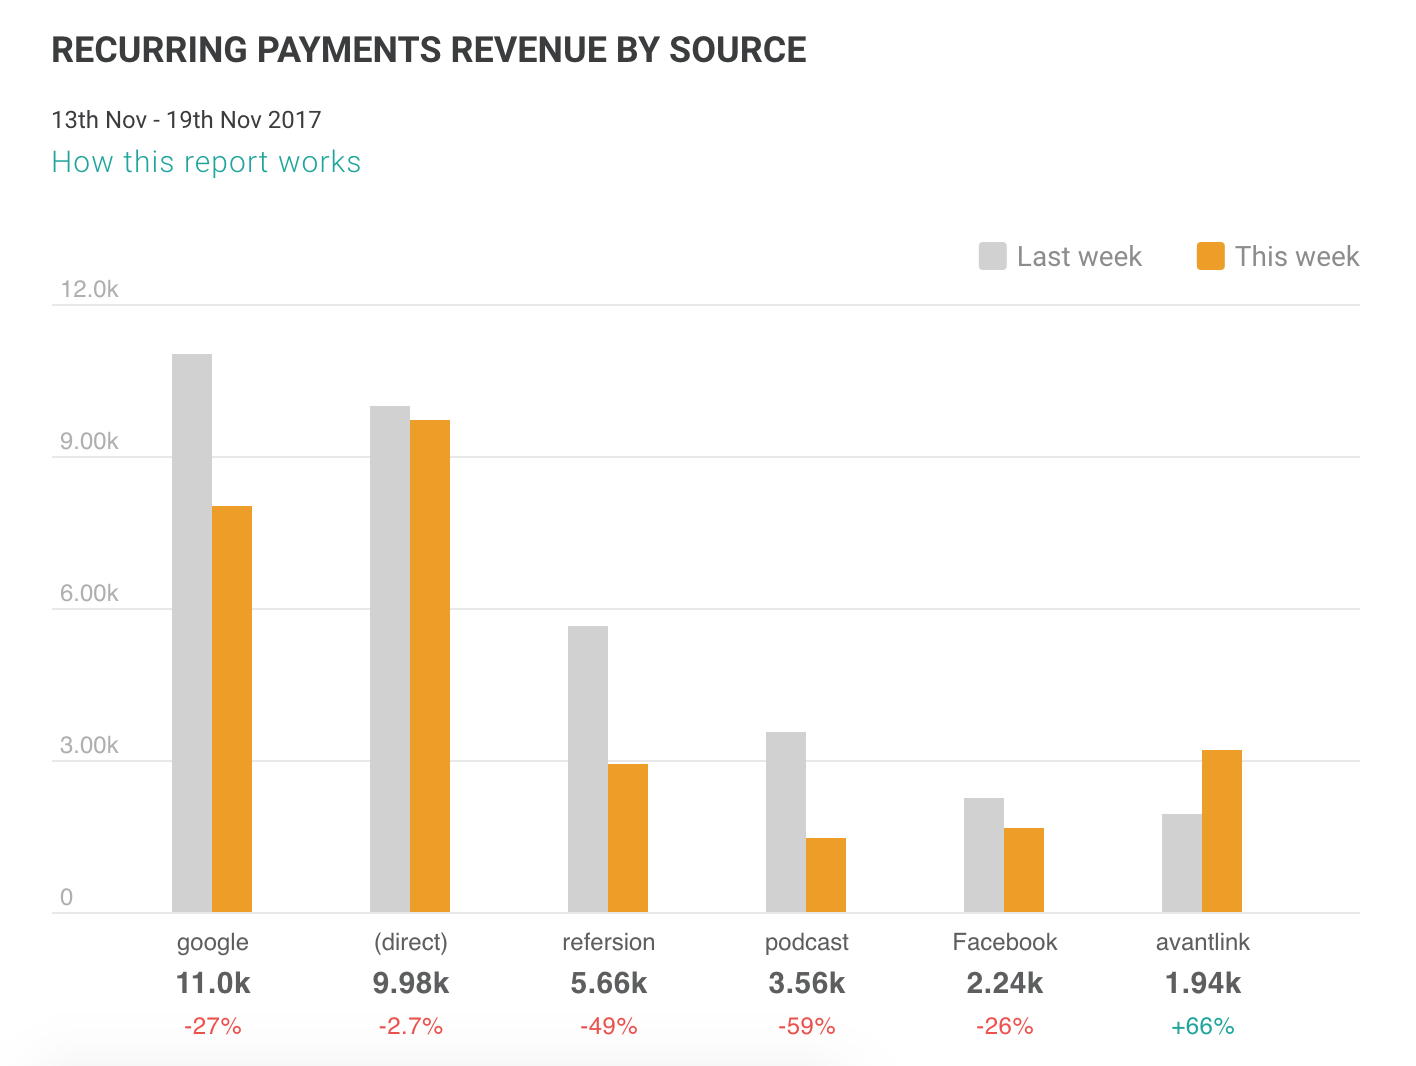 Recurring payments revenue by source